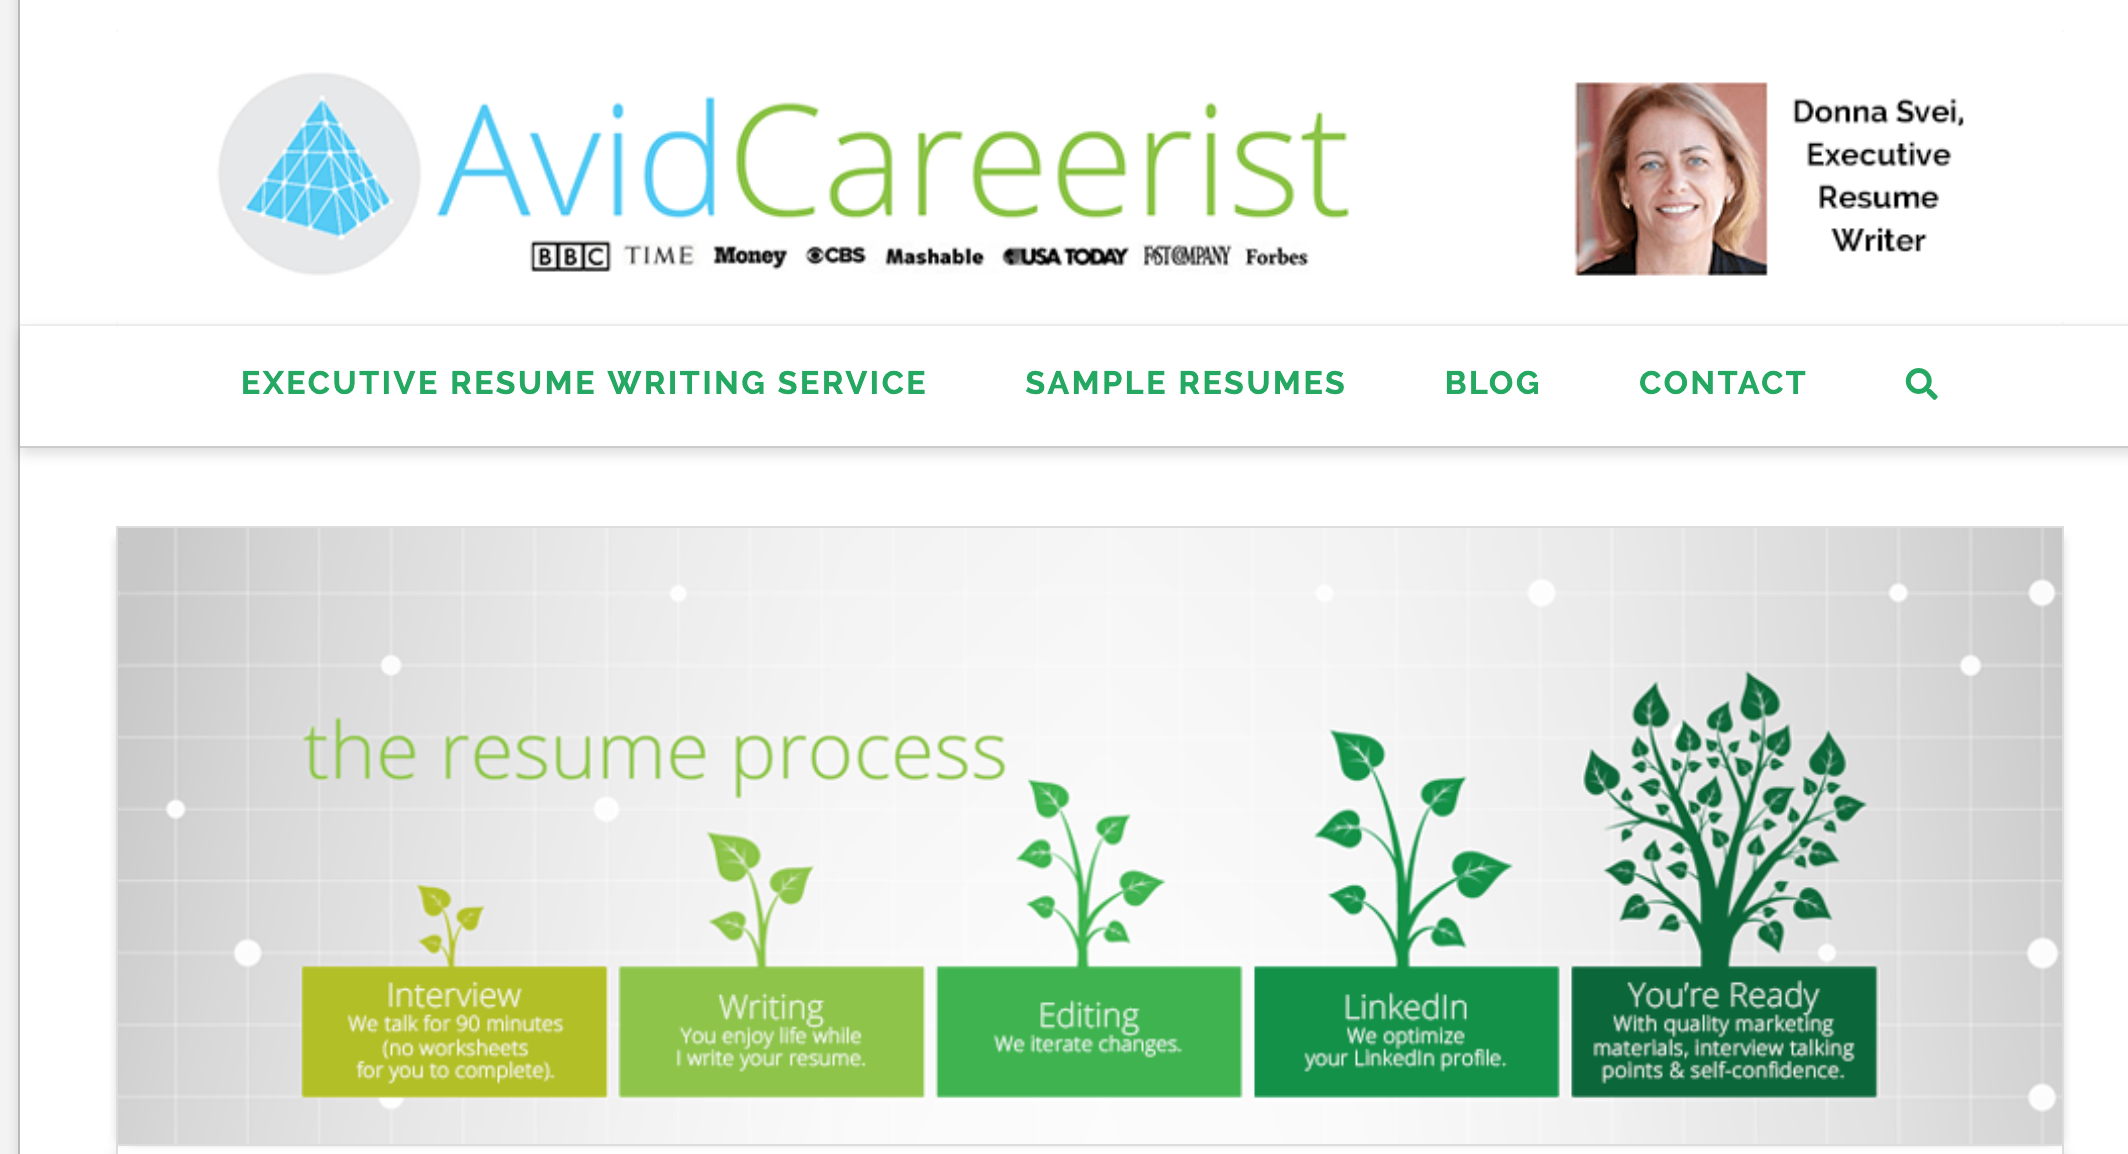 AvidCareerist - Executive Resumes